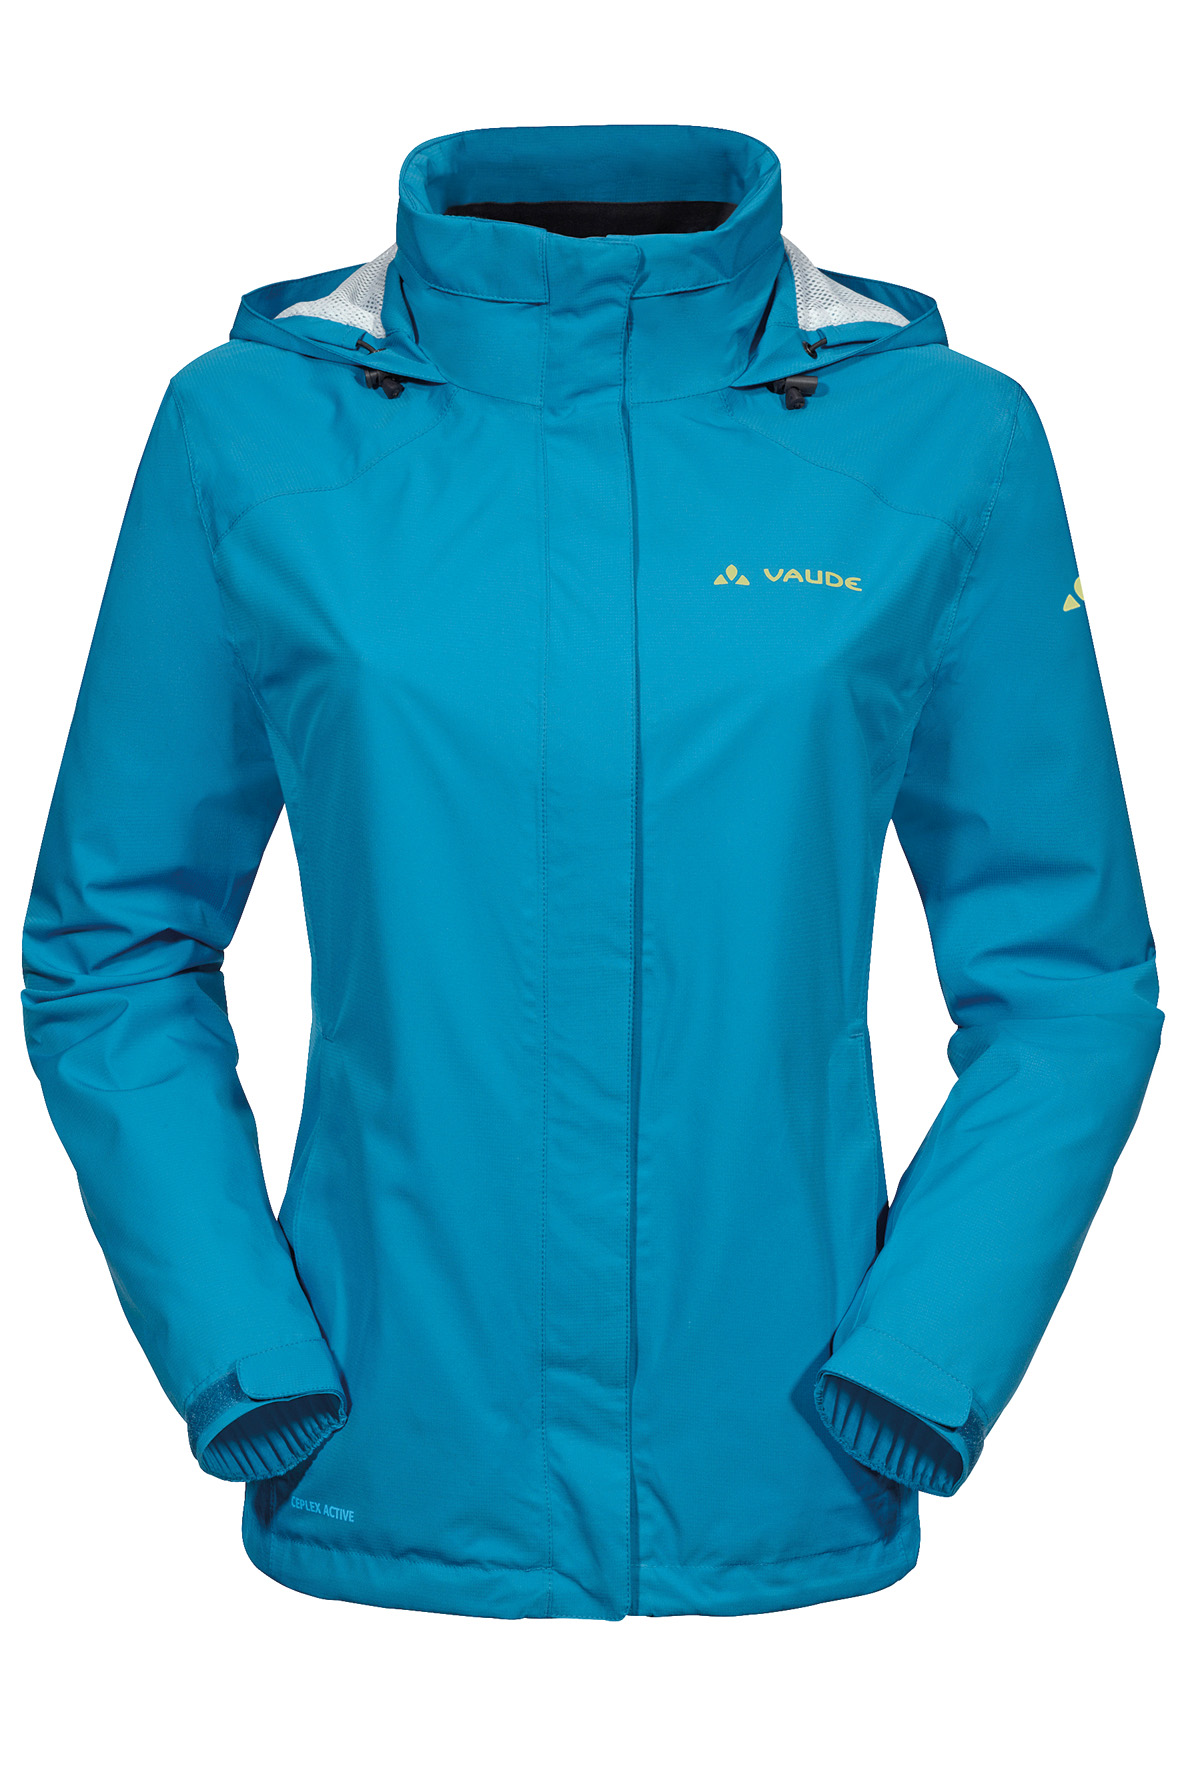 VAUDE Women´s Escape Bike Light Jacket teal blue Größe 36 - schneider-sports